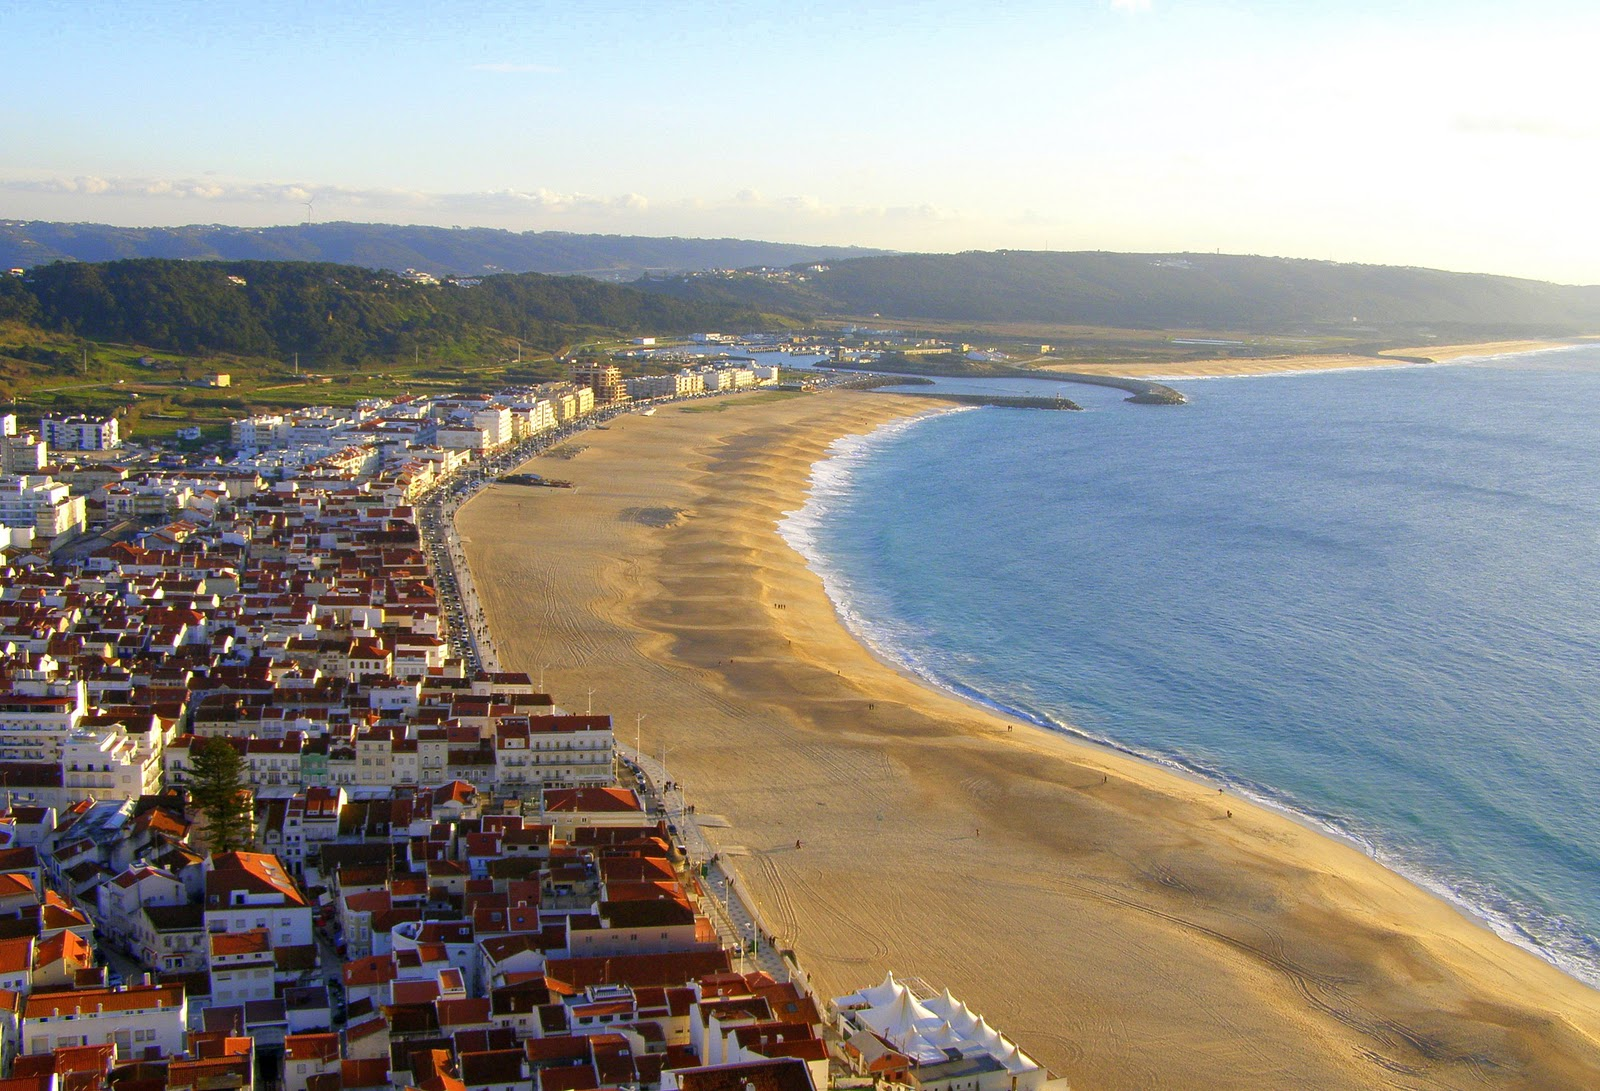 Nazaré from the viewpoint